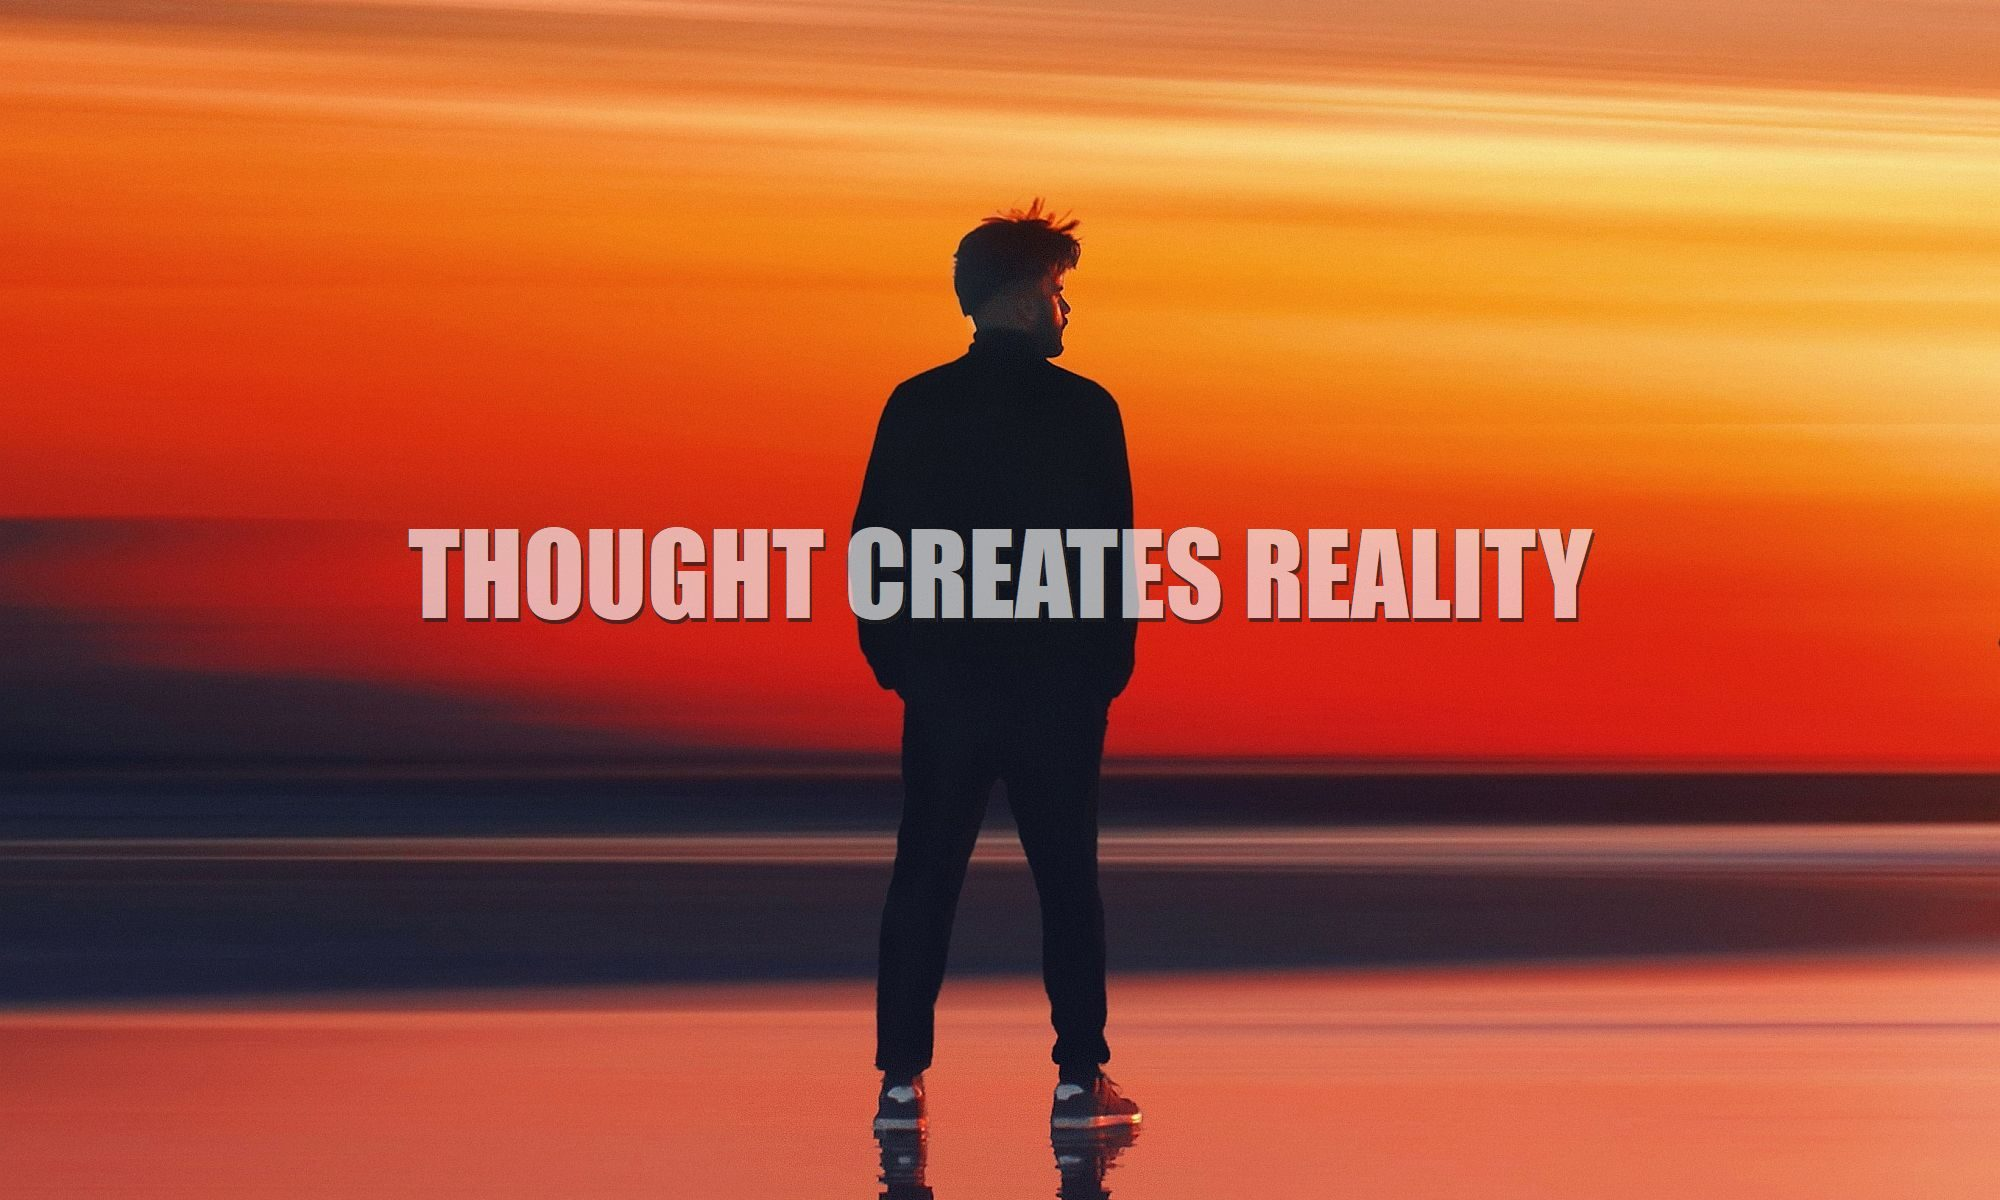 thought-creates-reality-how-your-thoughts-create-physical-reality-everything-099-2000